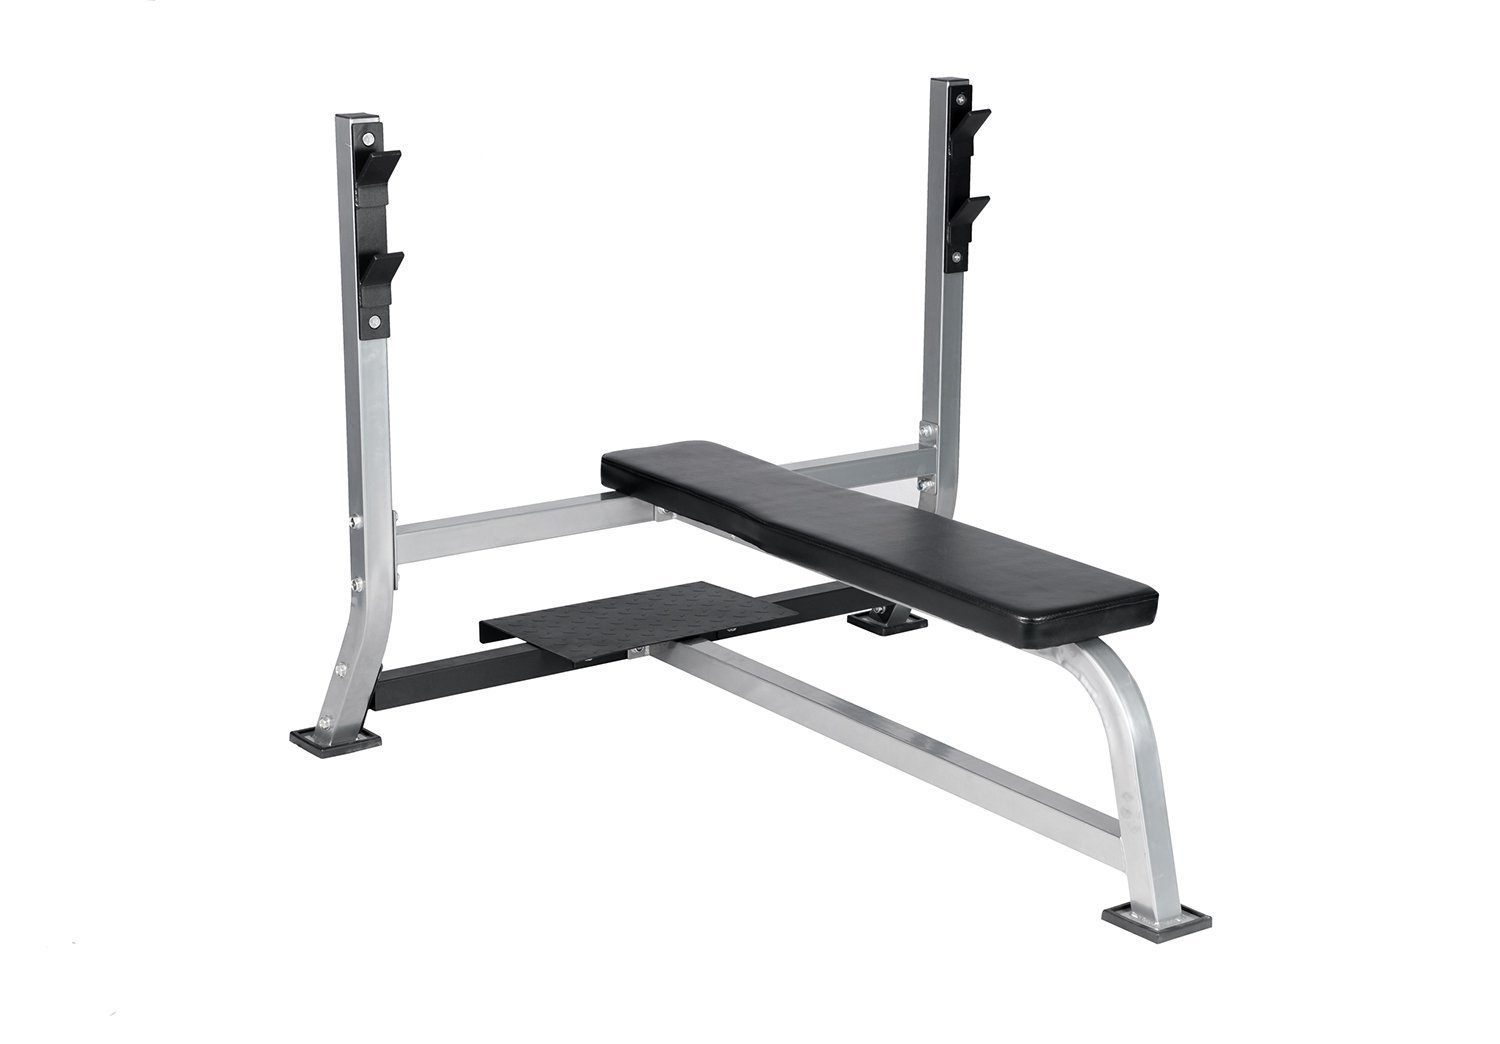 Heavy Duty Bench Press Barbell Weight Lifting Strength Training Workout Bench by